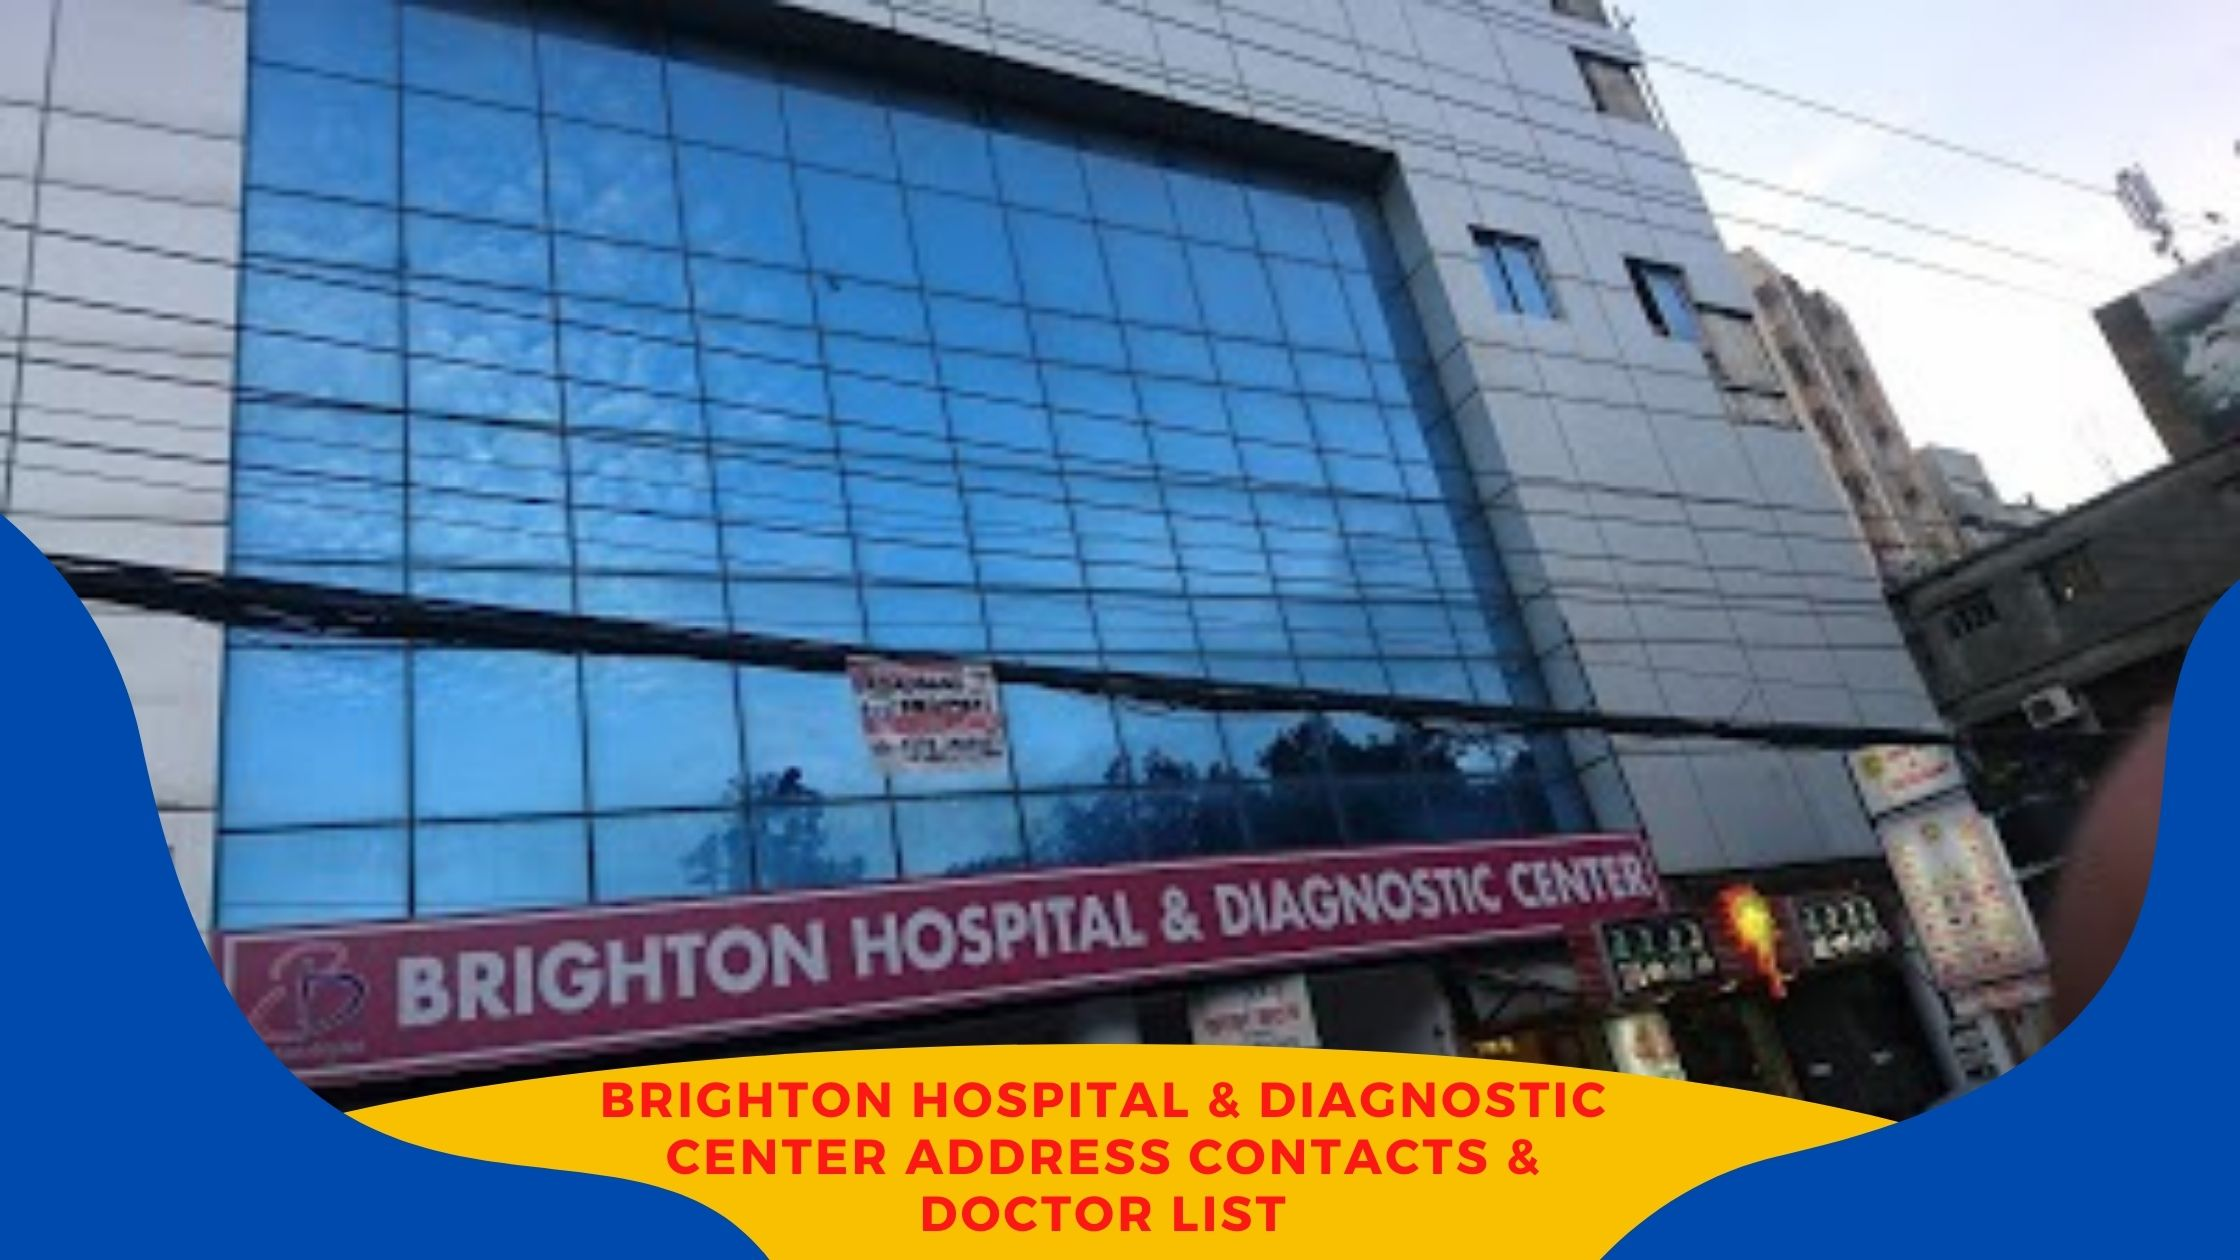 BRIGHTON HOSPITAL & Diagnostic center Address & Doctor List